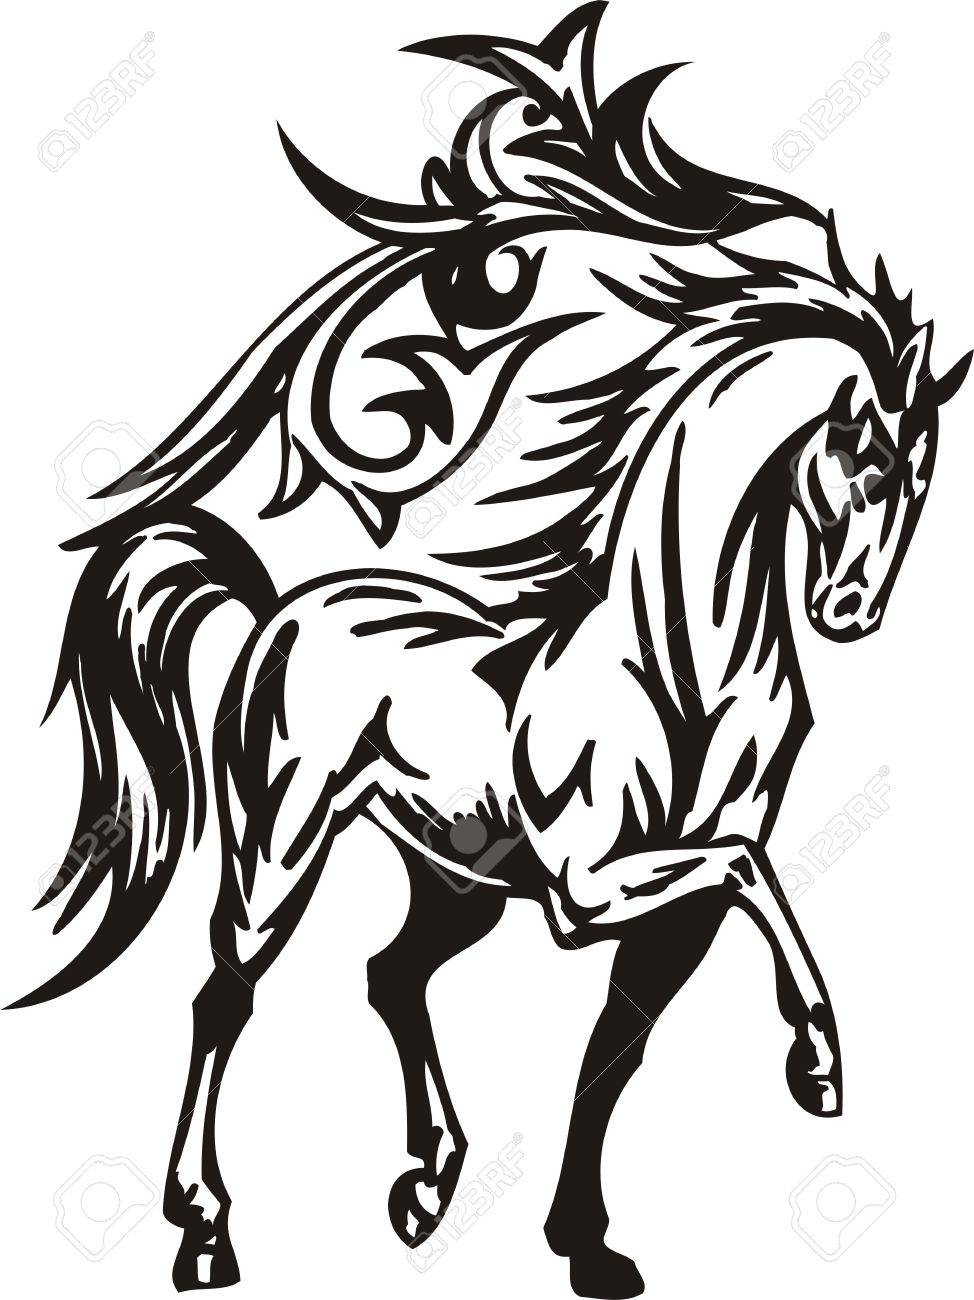 Horse illustration ready for vinyl cutting. Stock Vector - 8199830